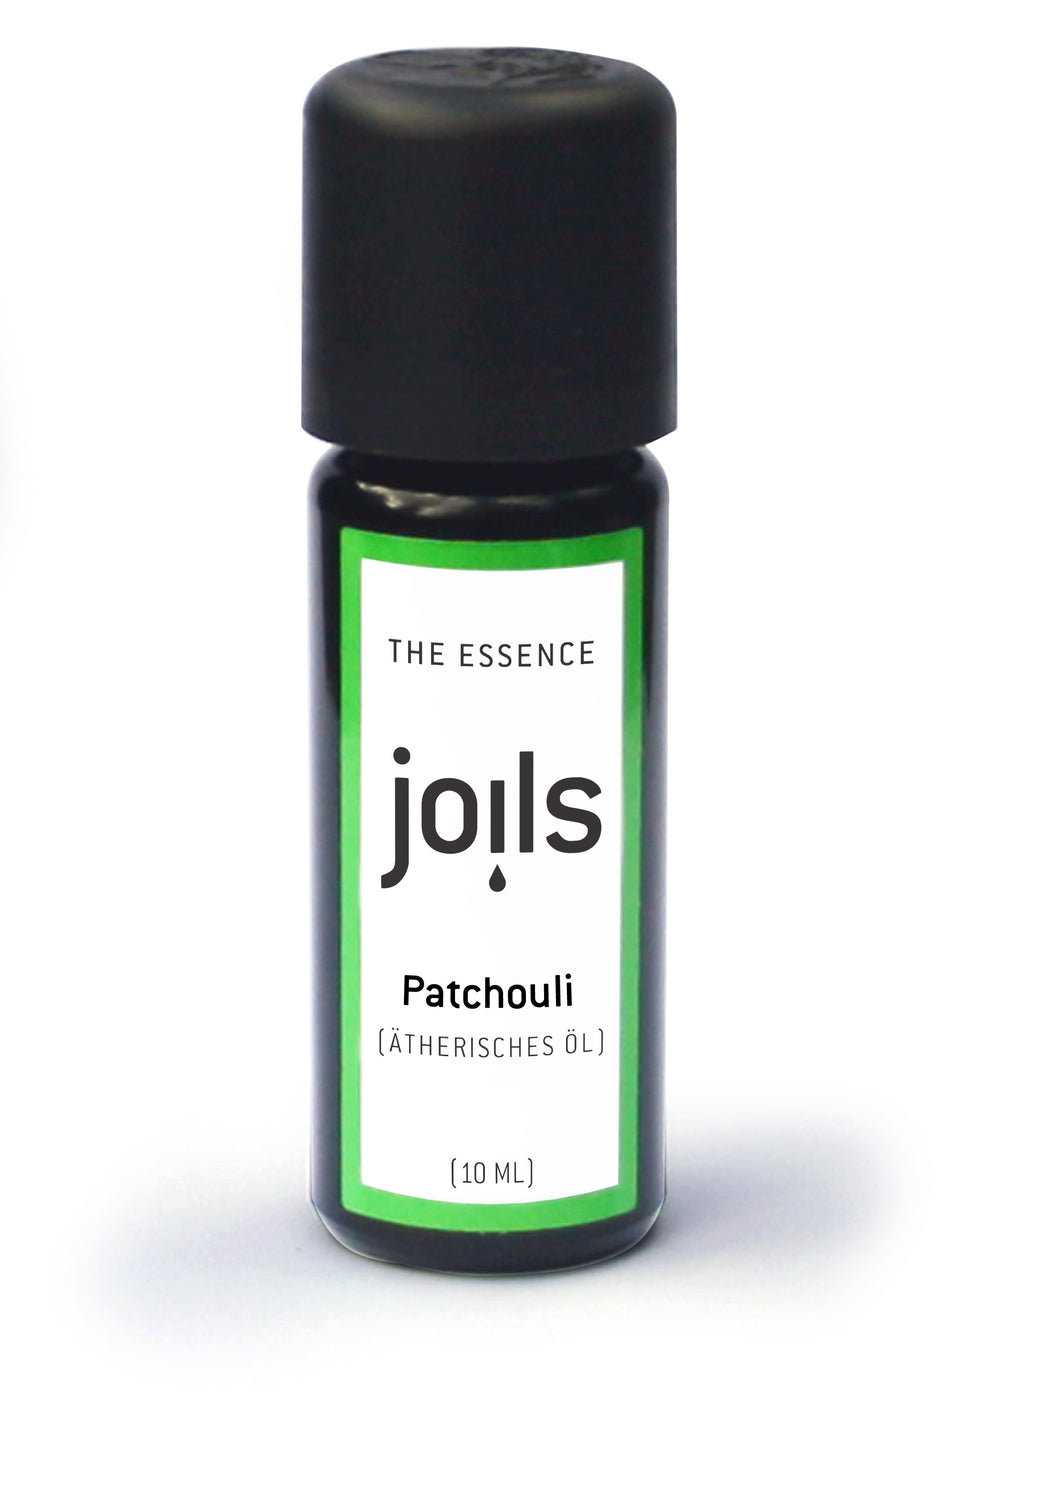 PATCHOULI 10ml - Joils